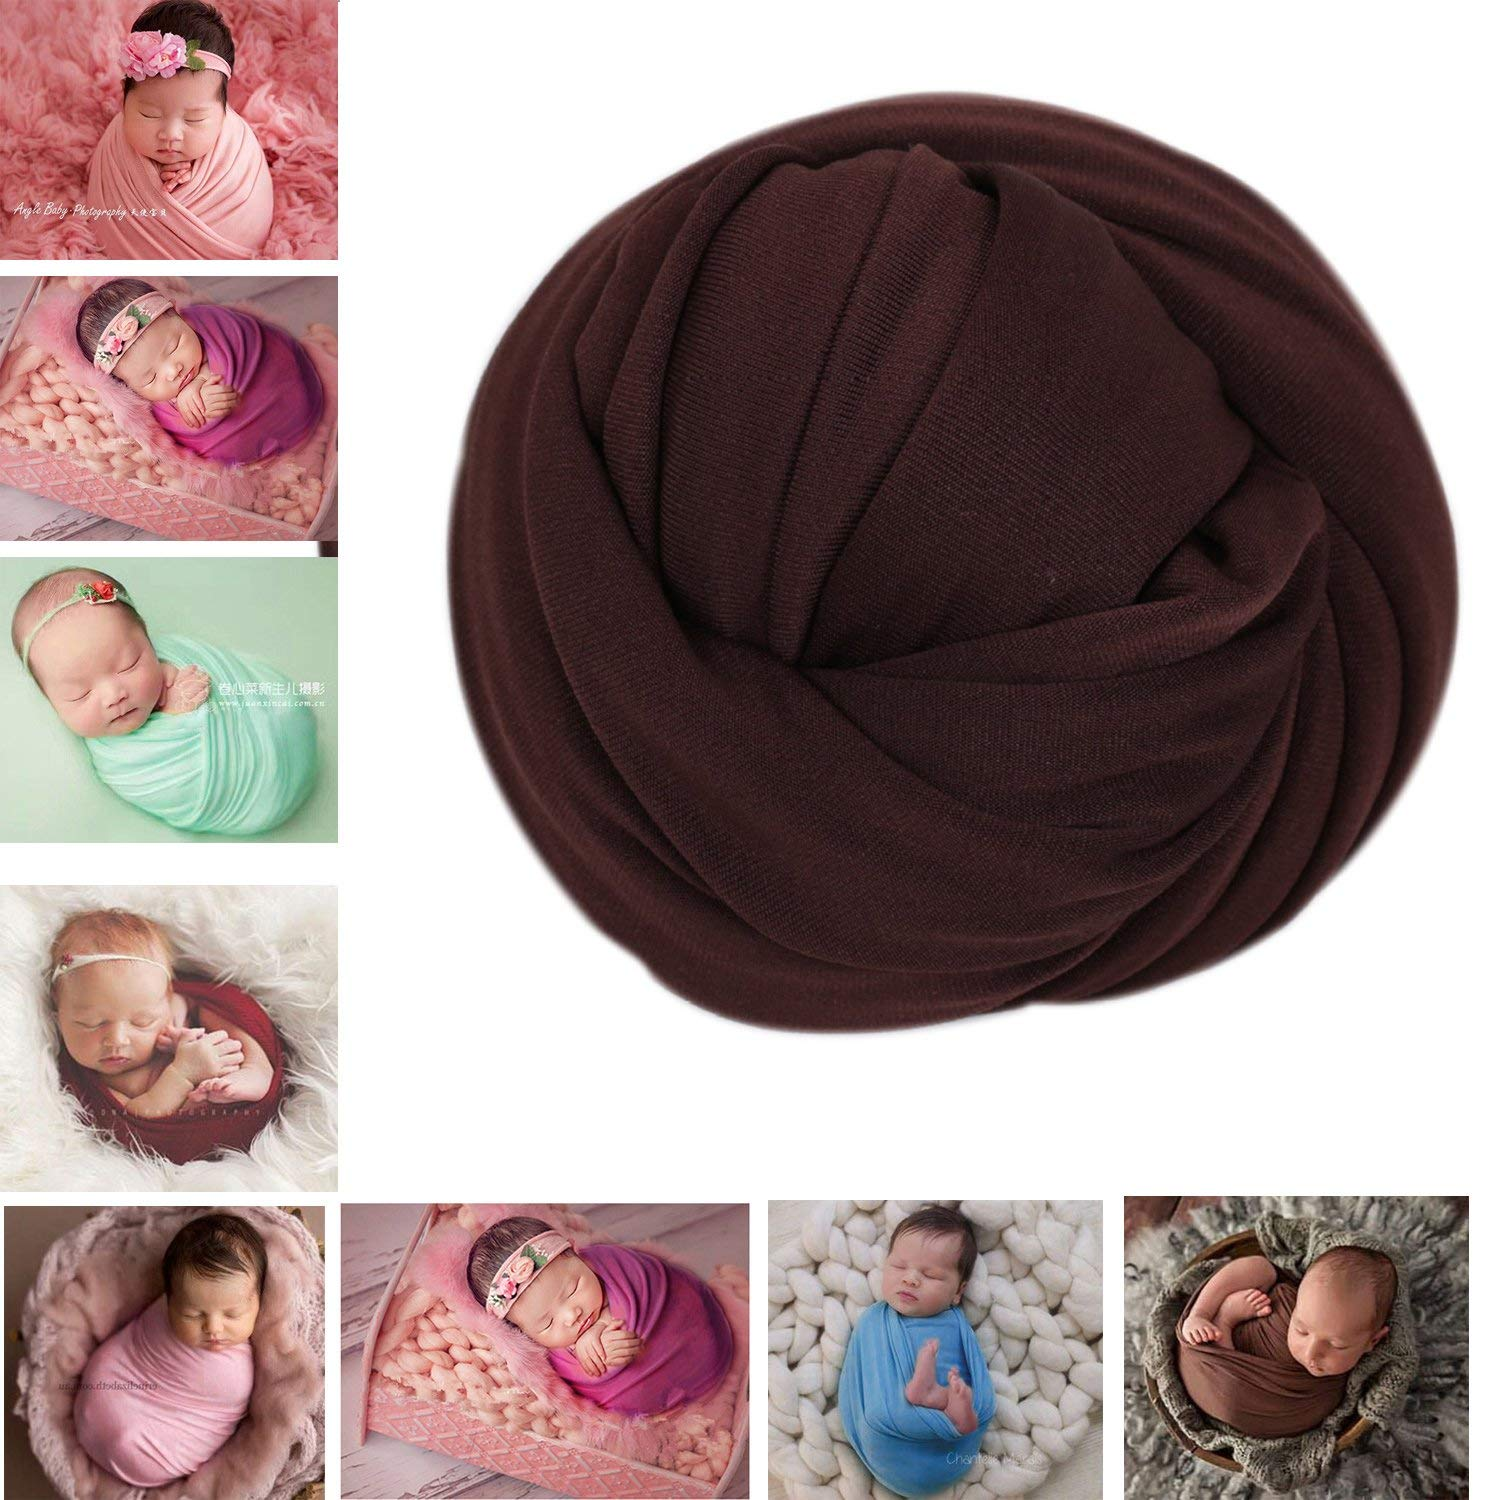 Newborn Photography Props Boys Baby Girls Photo Outfits Soft Stretchy Wrap Blanket Swaddle Backdrops for Photo Shoot